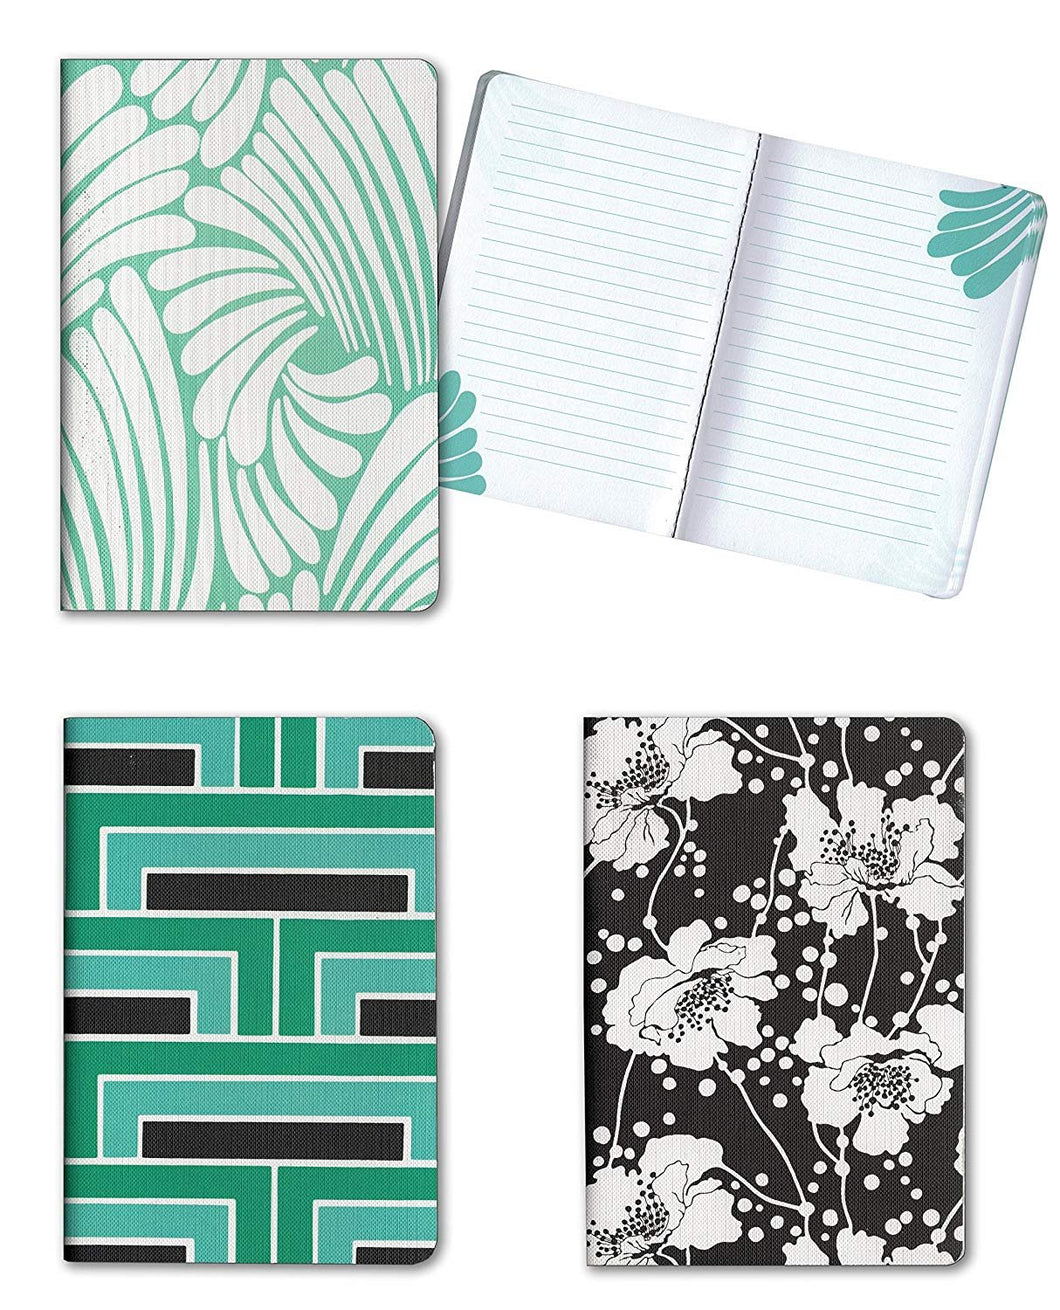 Set of 3 Florence Broadhurst Pocket Journals (Spot Floral) - 96 Lined Pages in each Notebook - 4.25